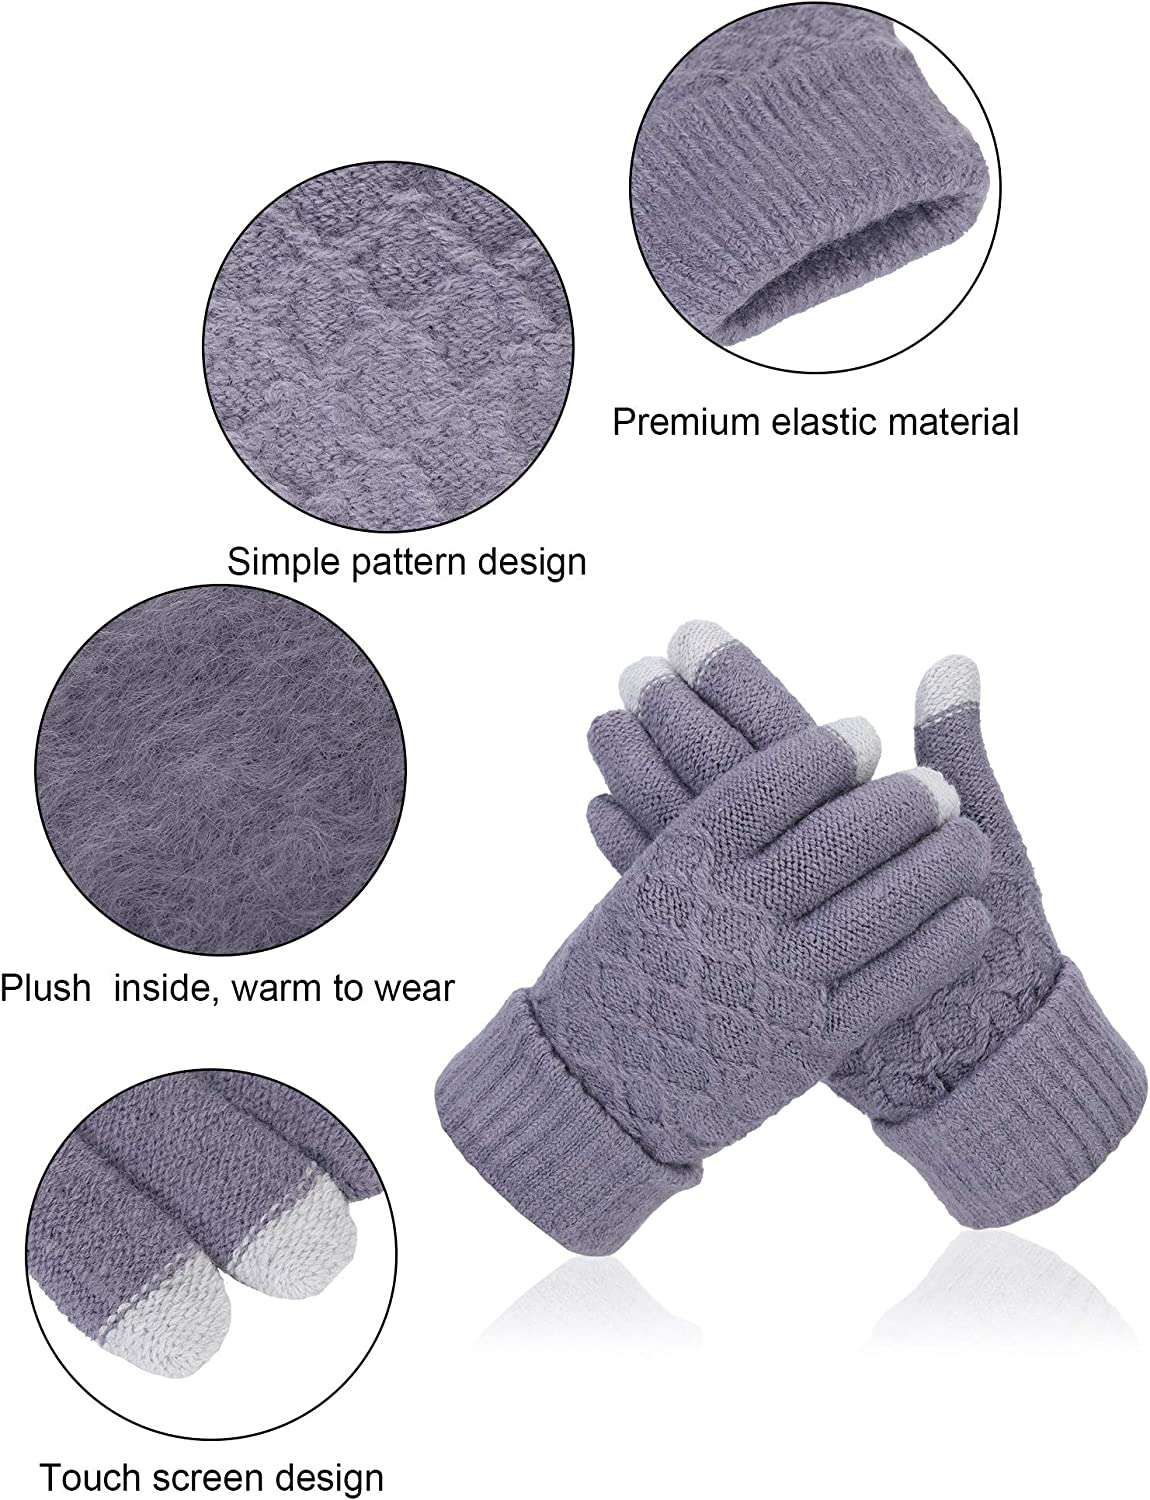 SATINIOR 6 Pairs Winter Knit Touch Screen Gloves Full Finger Mittens with Jacquard Design, Red, Black, Blue, Pink, Gray, White, 19 x 11 cm/ 7.5 x 4.3 inches (LW)